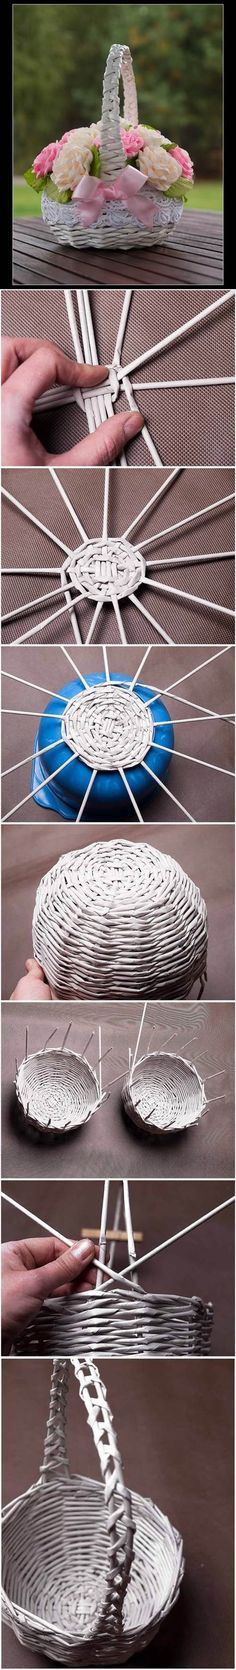 How to DIY Newspaper Tubes Weaving Basket Hobbies And Crafts, Fun Crafts, Diy And Crafts, Arts And Crafts, Diy Projects To Try, Craft Projects, Paper Weaving, Newspaper Crafts, Newspaper Basket